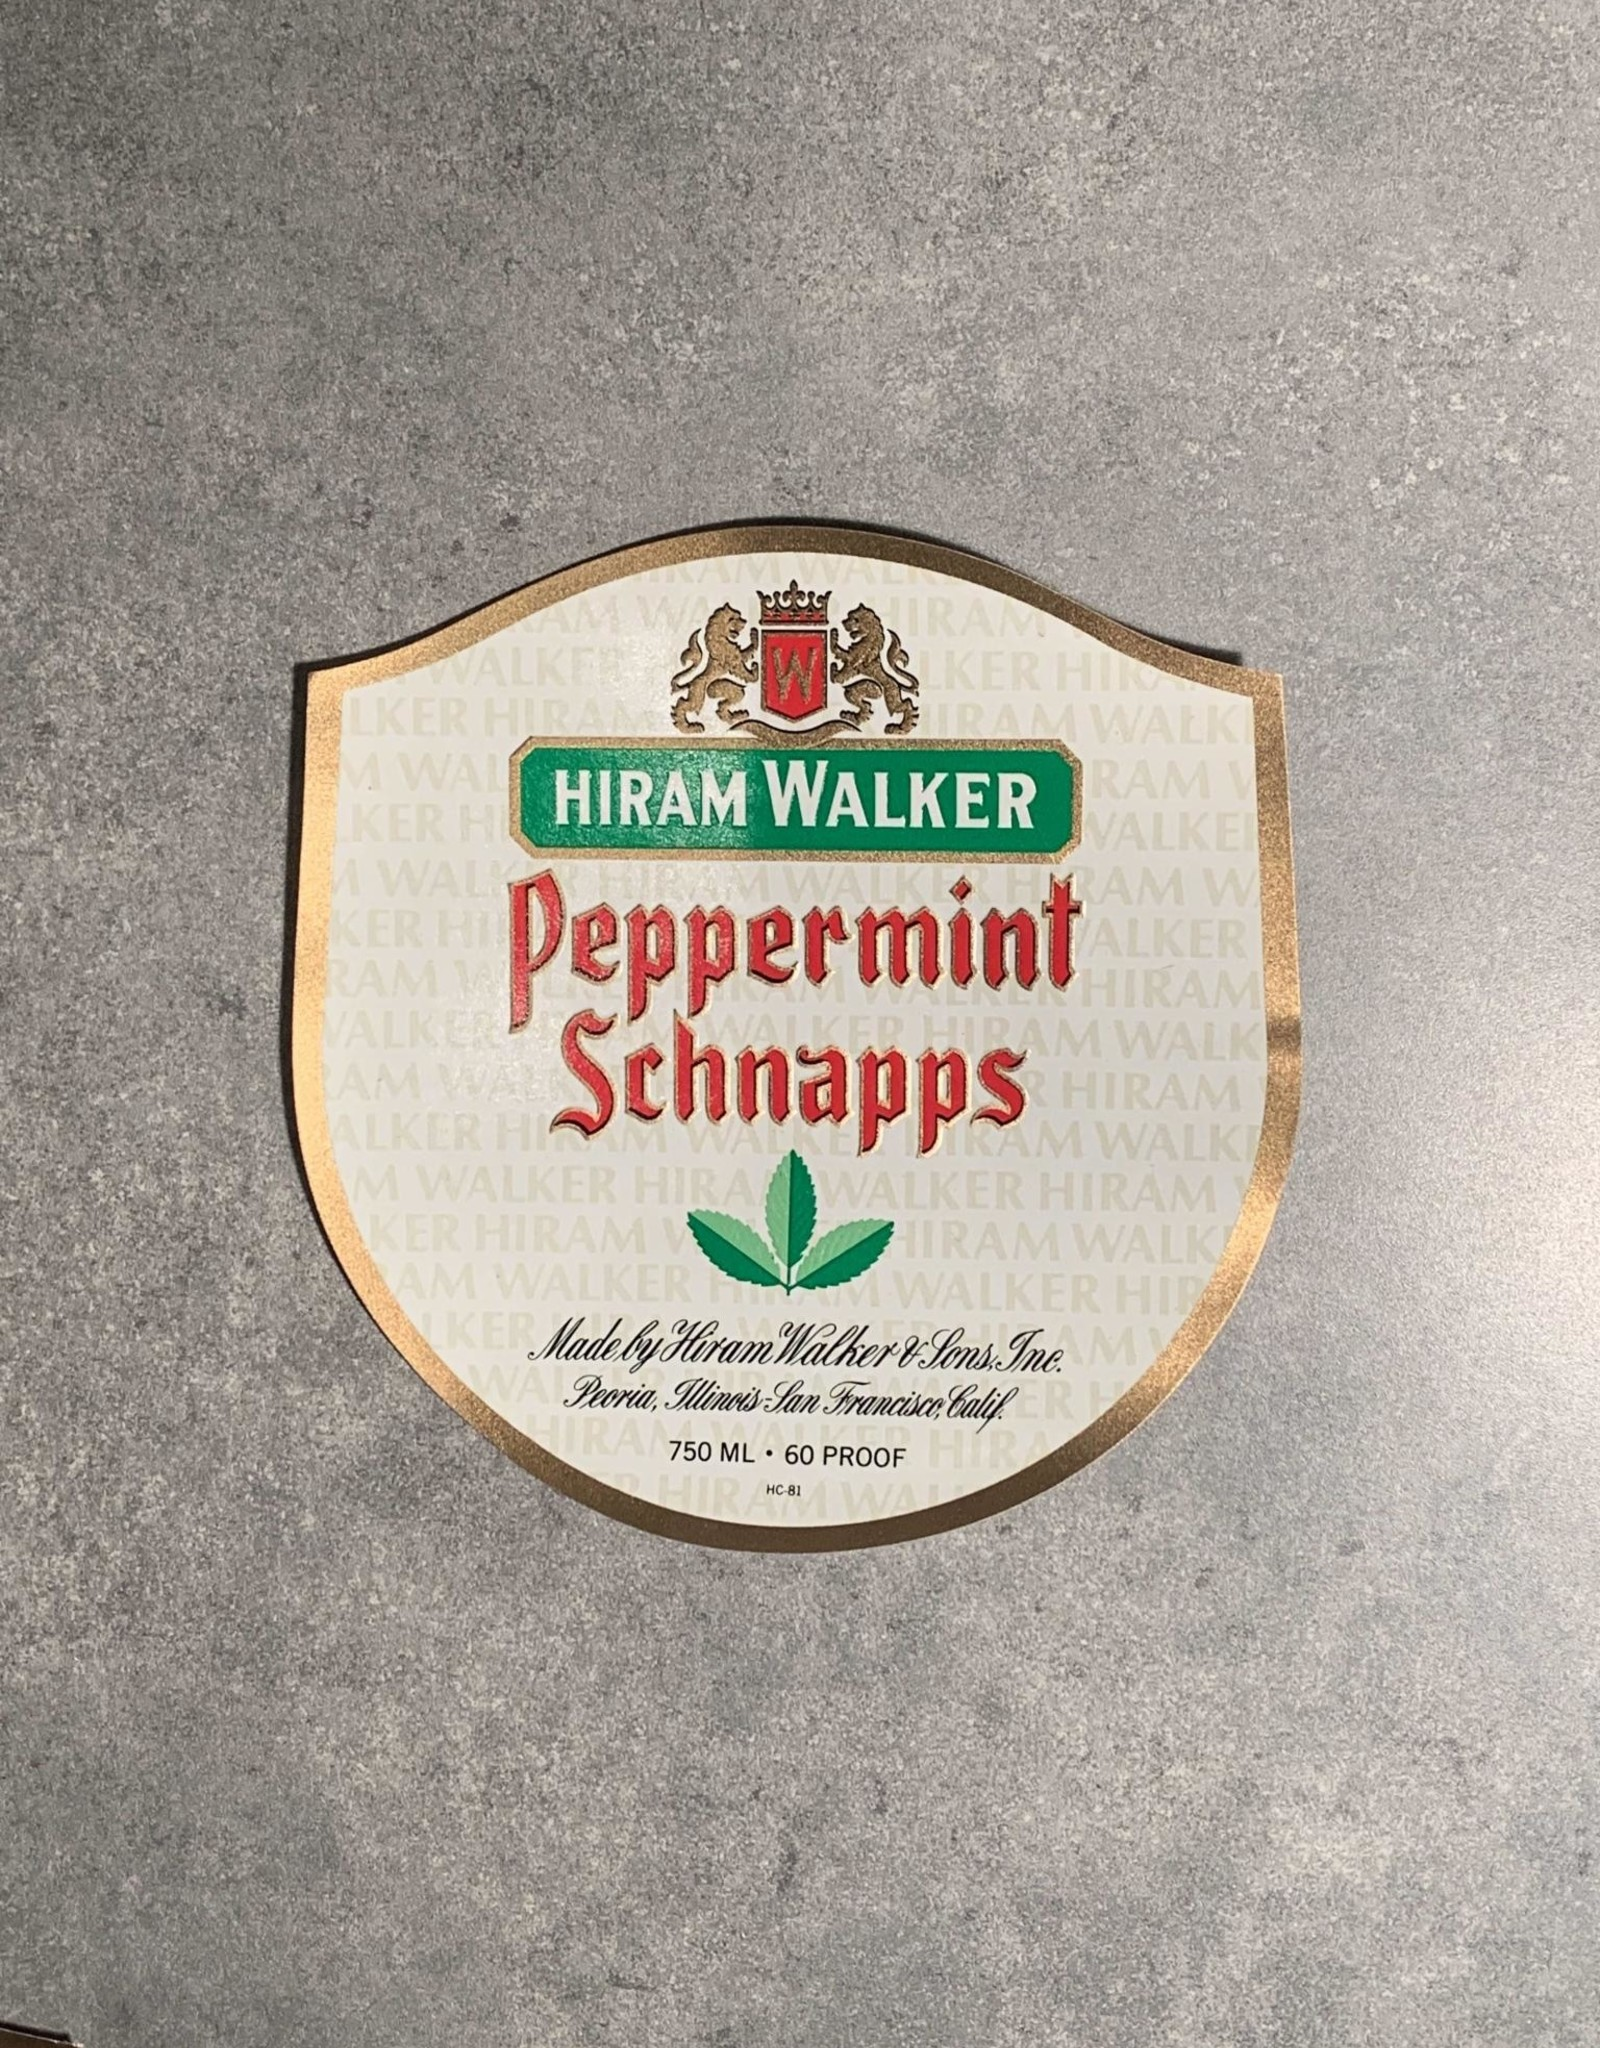 UA Merch Hiram Walker & Sons Peoria Il. Peppermint Schnapps Label